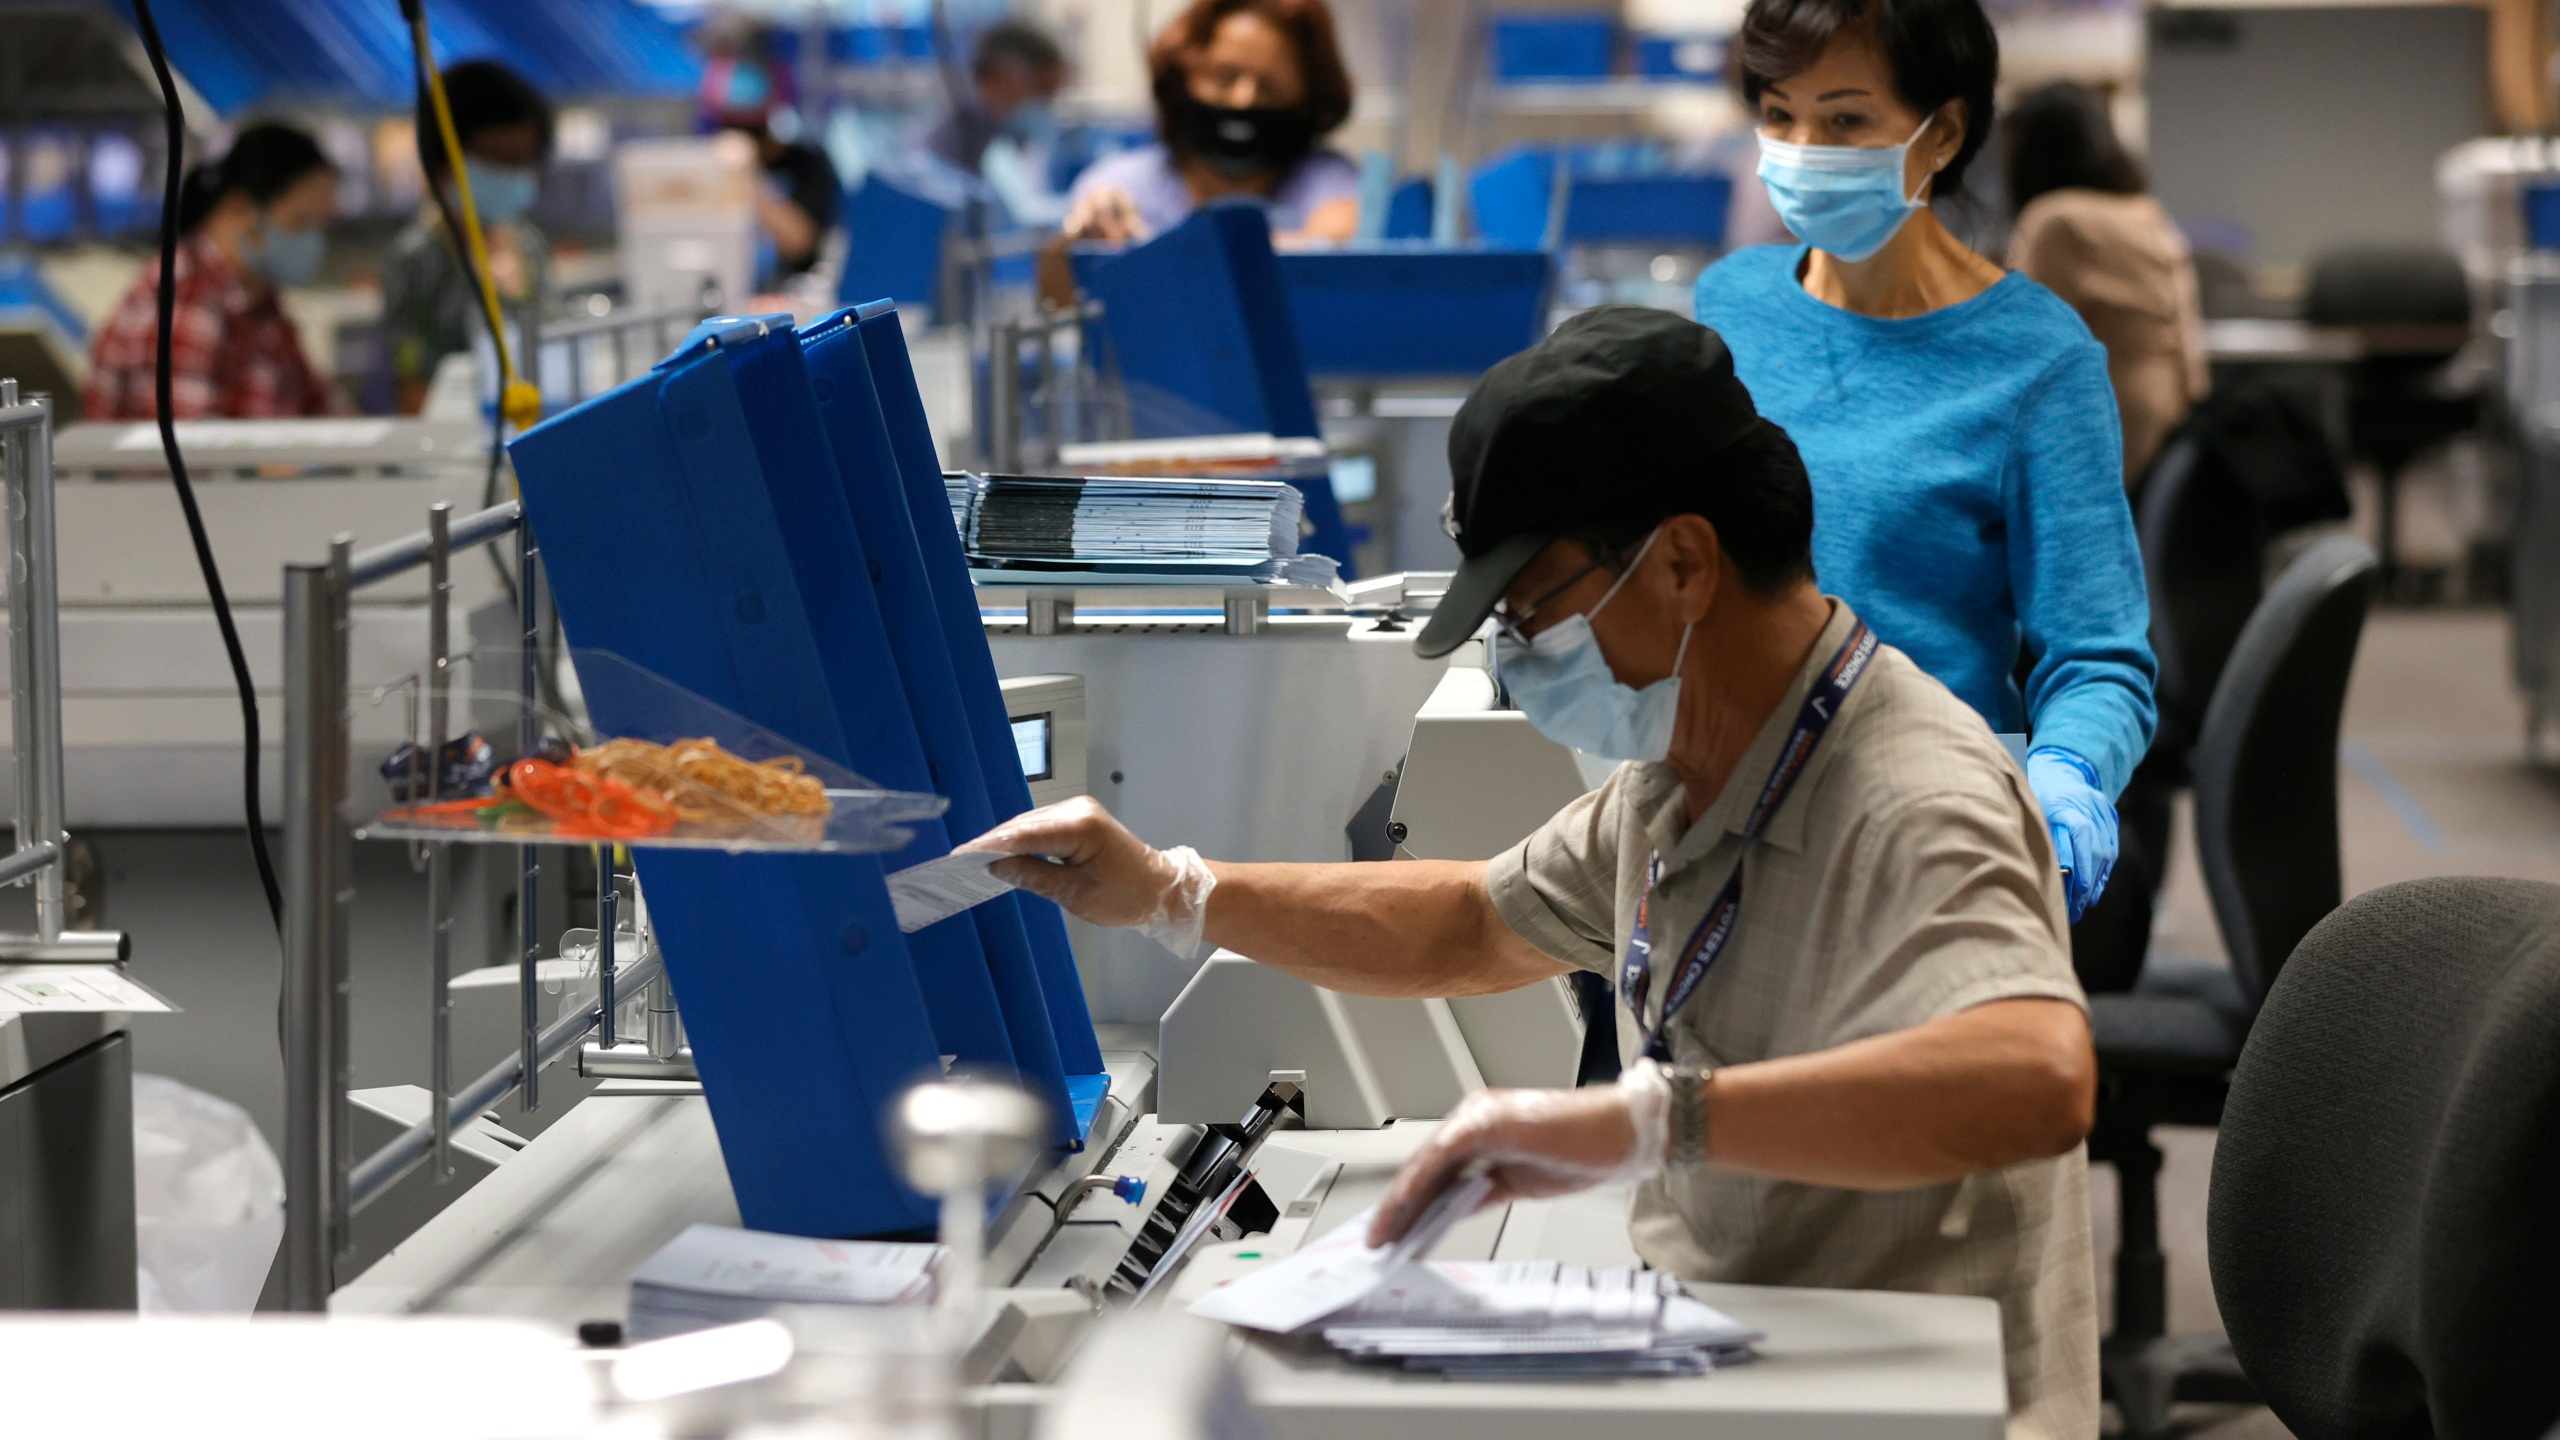 Workers sort through mail-in-ballots at the Santa Clara County registrar of voters office on Aug. 25, 2021 in San Jose, California. (Justin Sullivan/Getty Images)